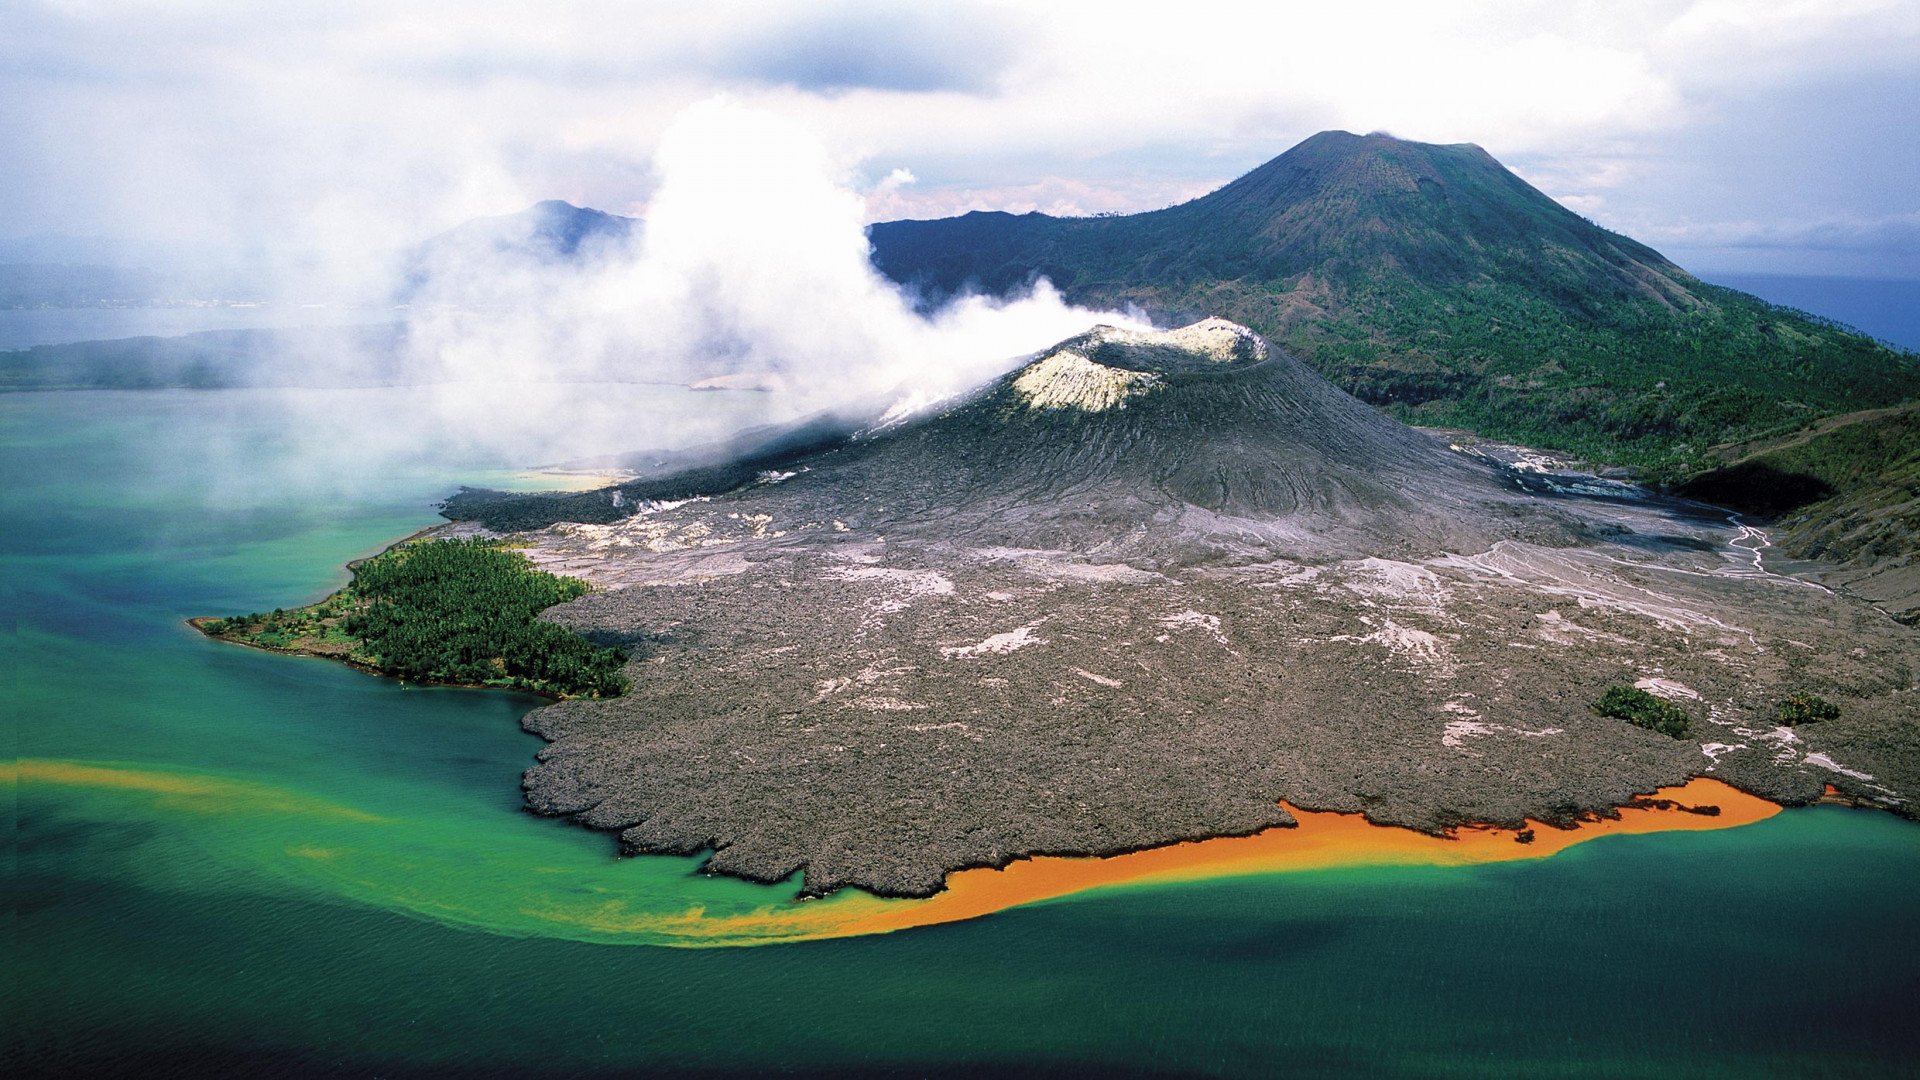 Rabaul Volcano in East New Britain